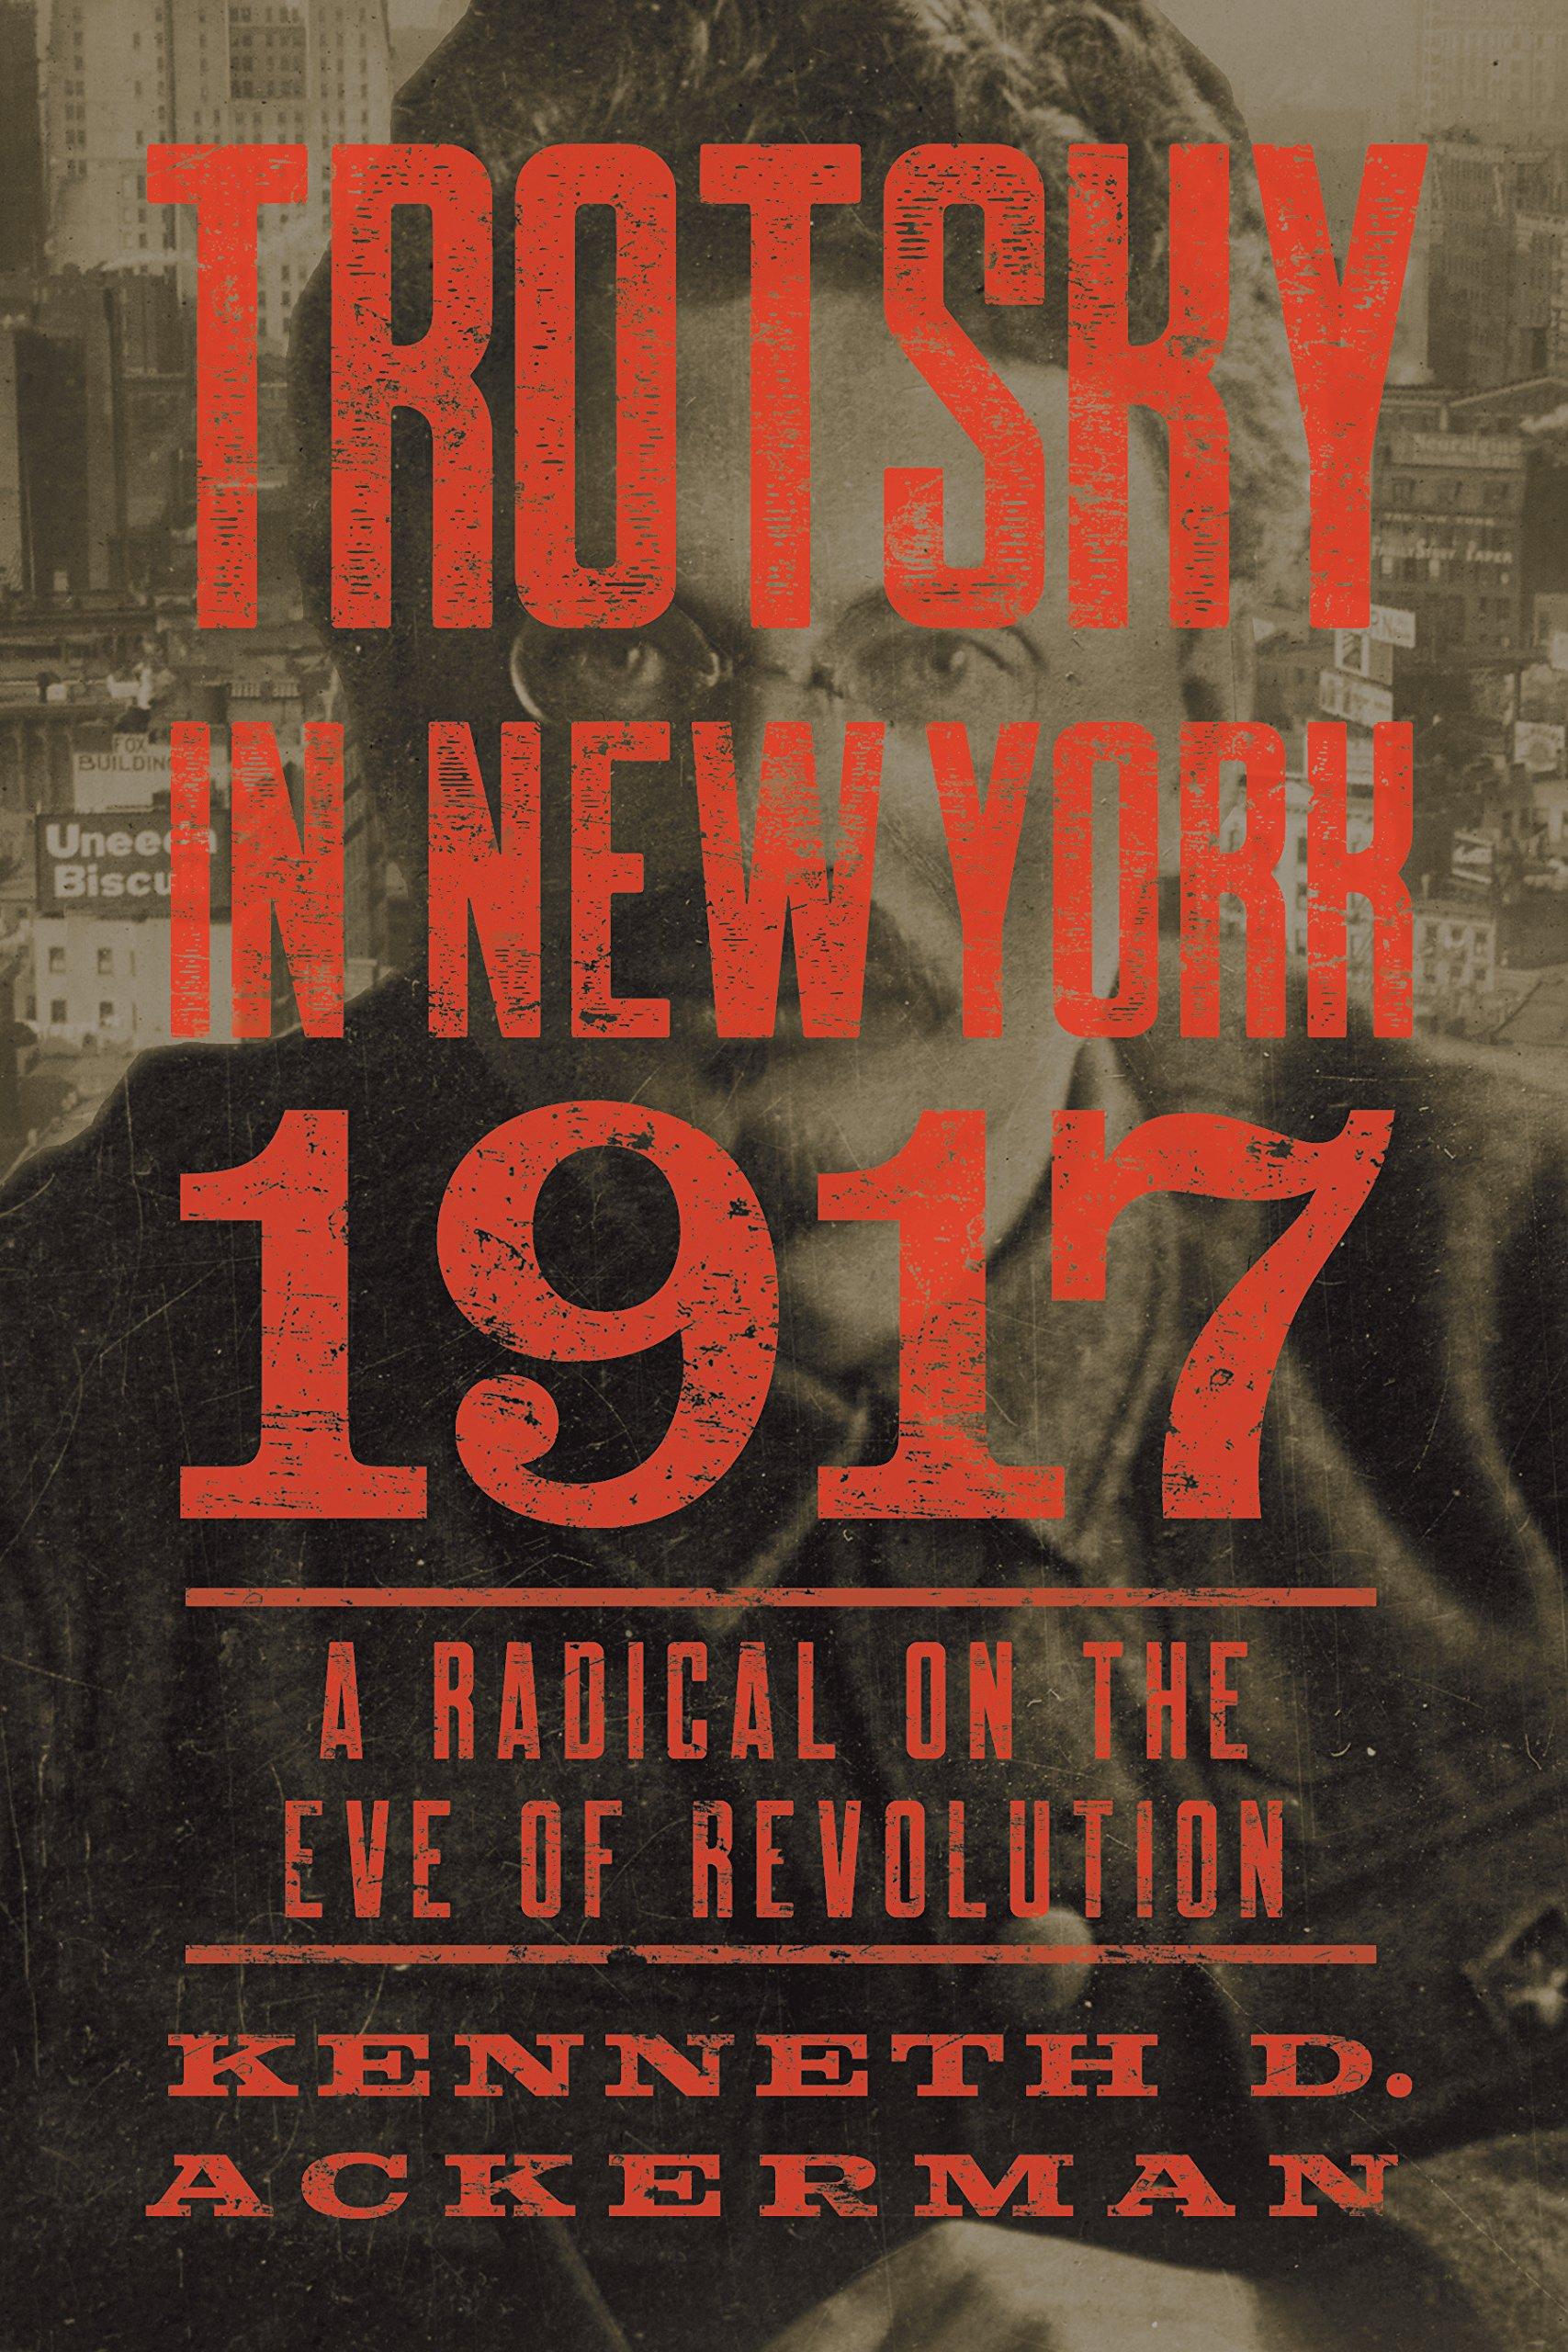 Amazon.com: Trotsky in New York, 1917: A Radical on the Eve of Revolution  (9781640090033): Kenneth D. Ackerman: Books